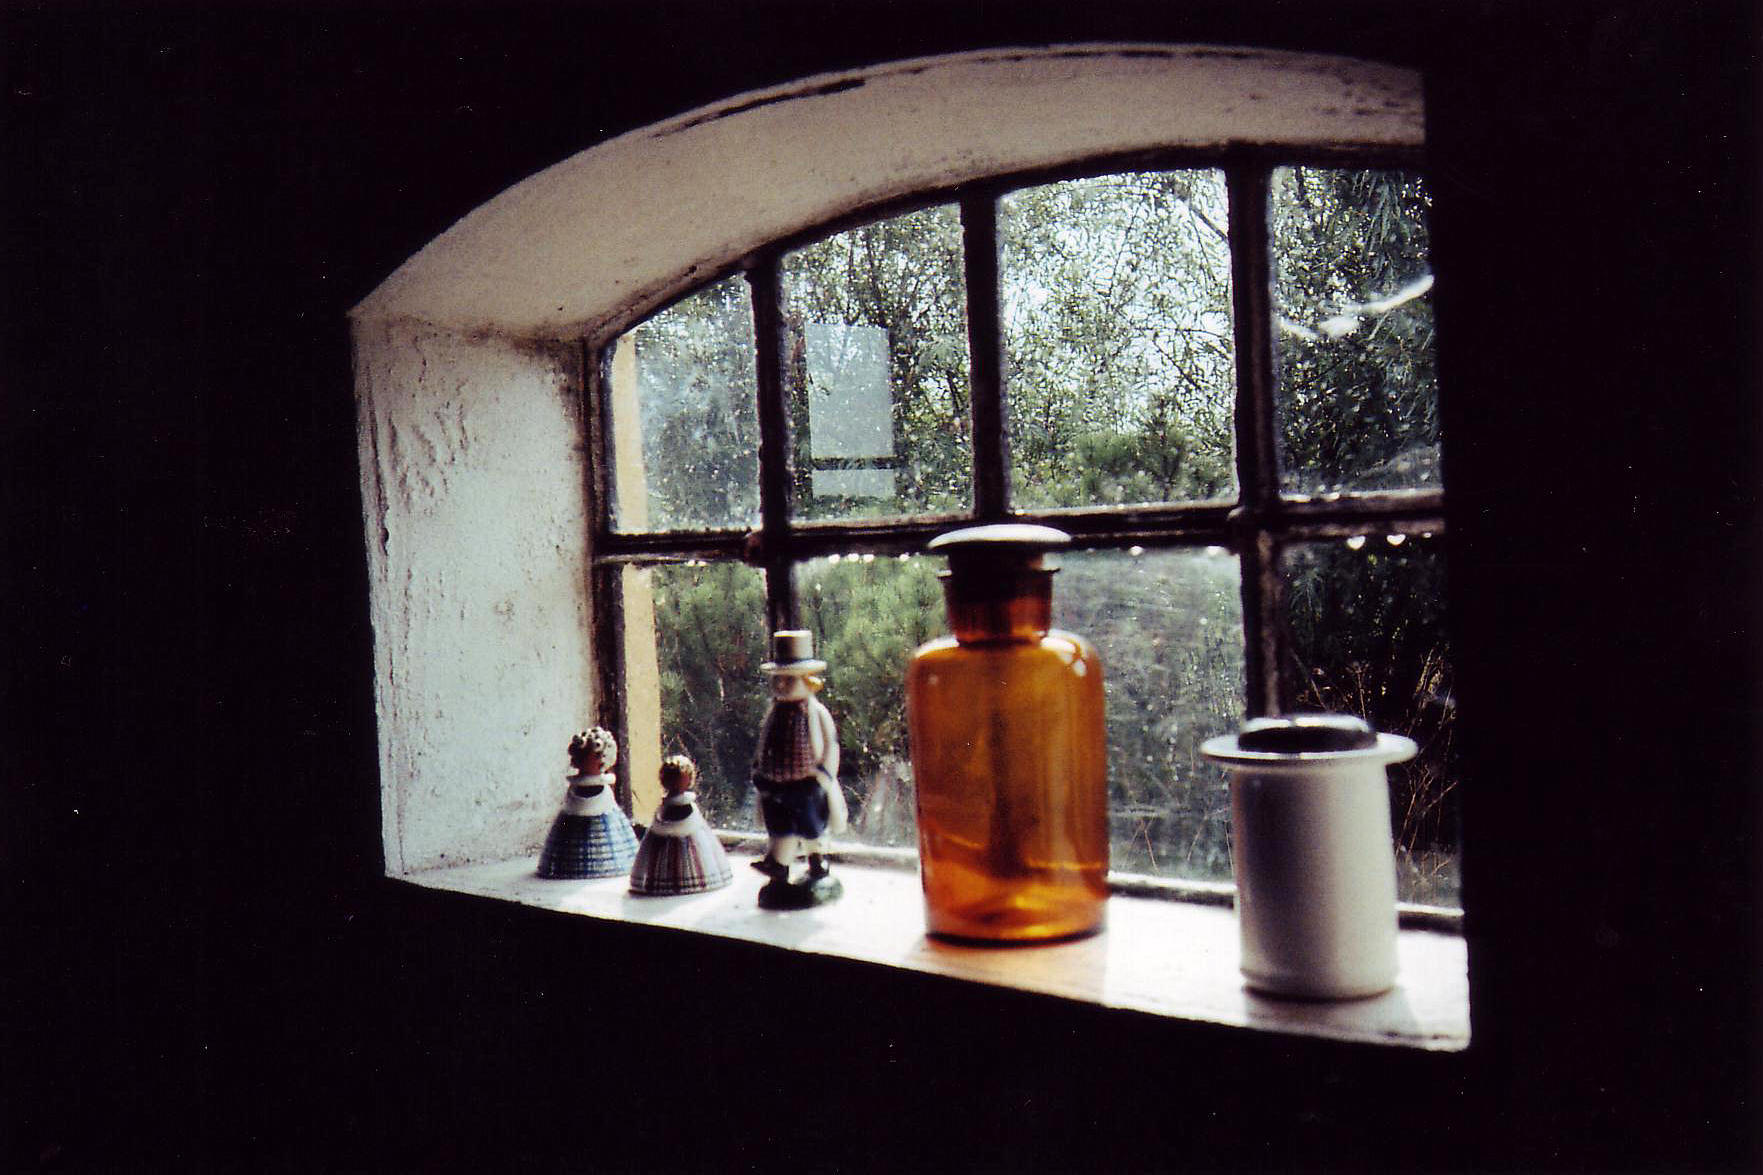 A window in my Danish family's Møn summer house. Taken back when I used film. Love film.